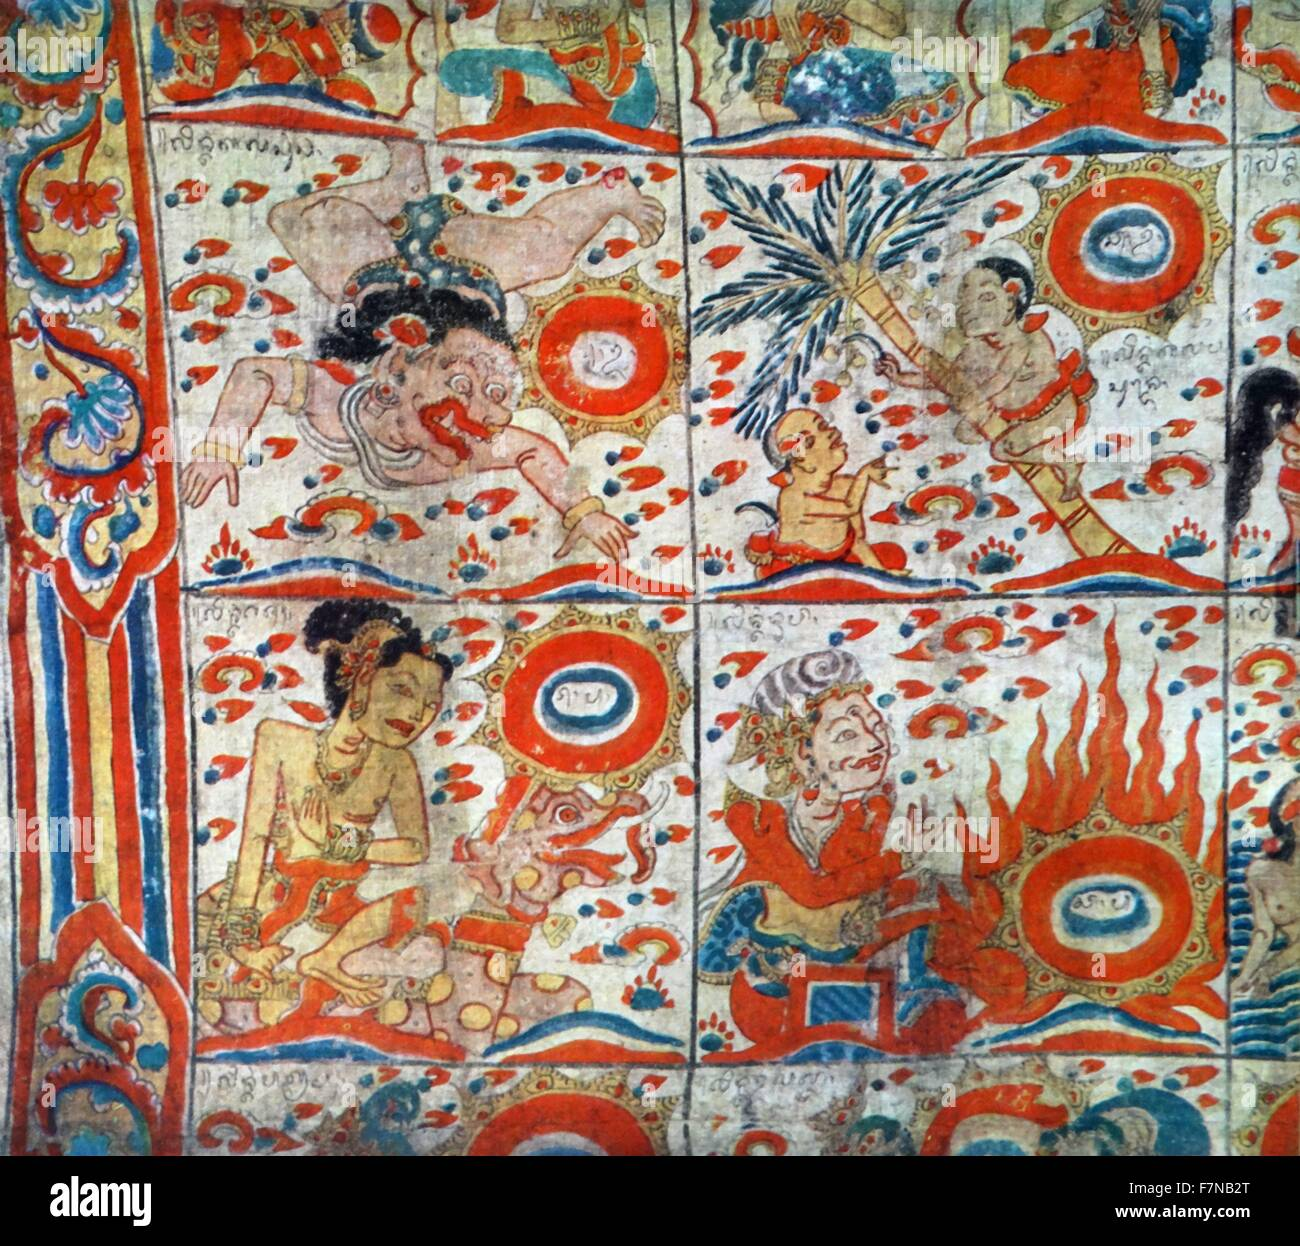 balinese painting depicting the signs of the Zodiac 19th century - Stock Image